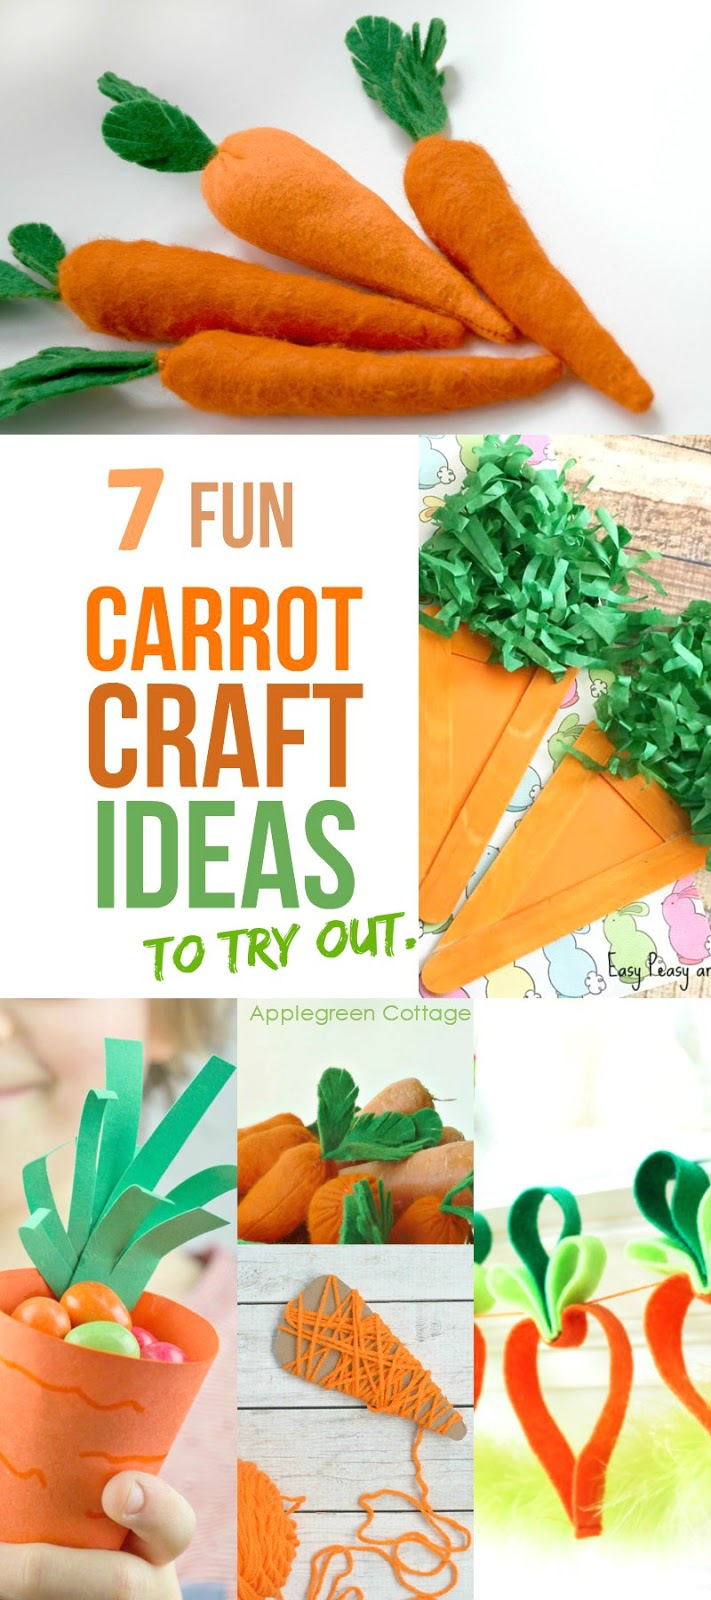 7 Fun Carrot Crafts Ideas For Spring Applegreen Cottage